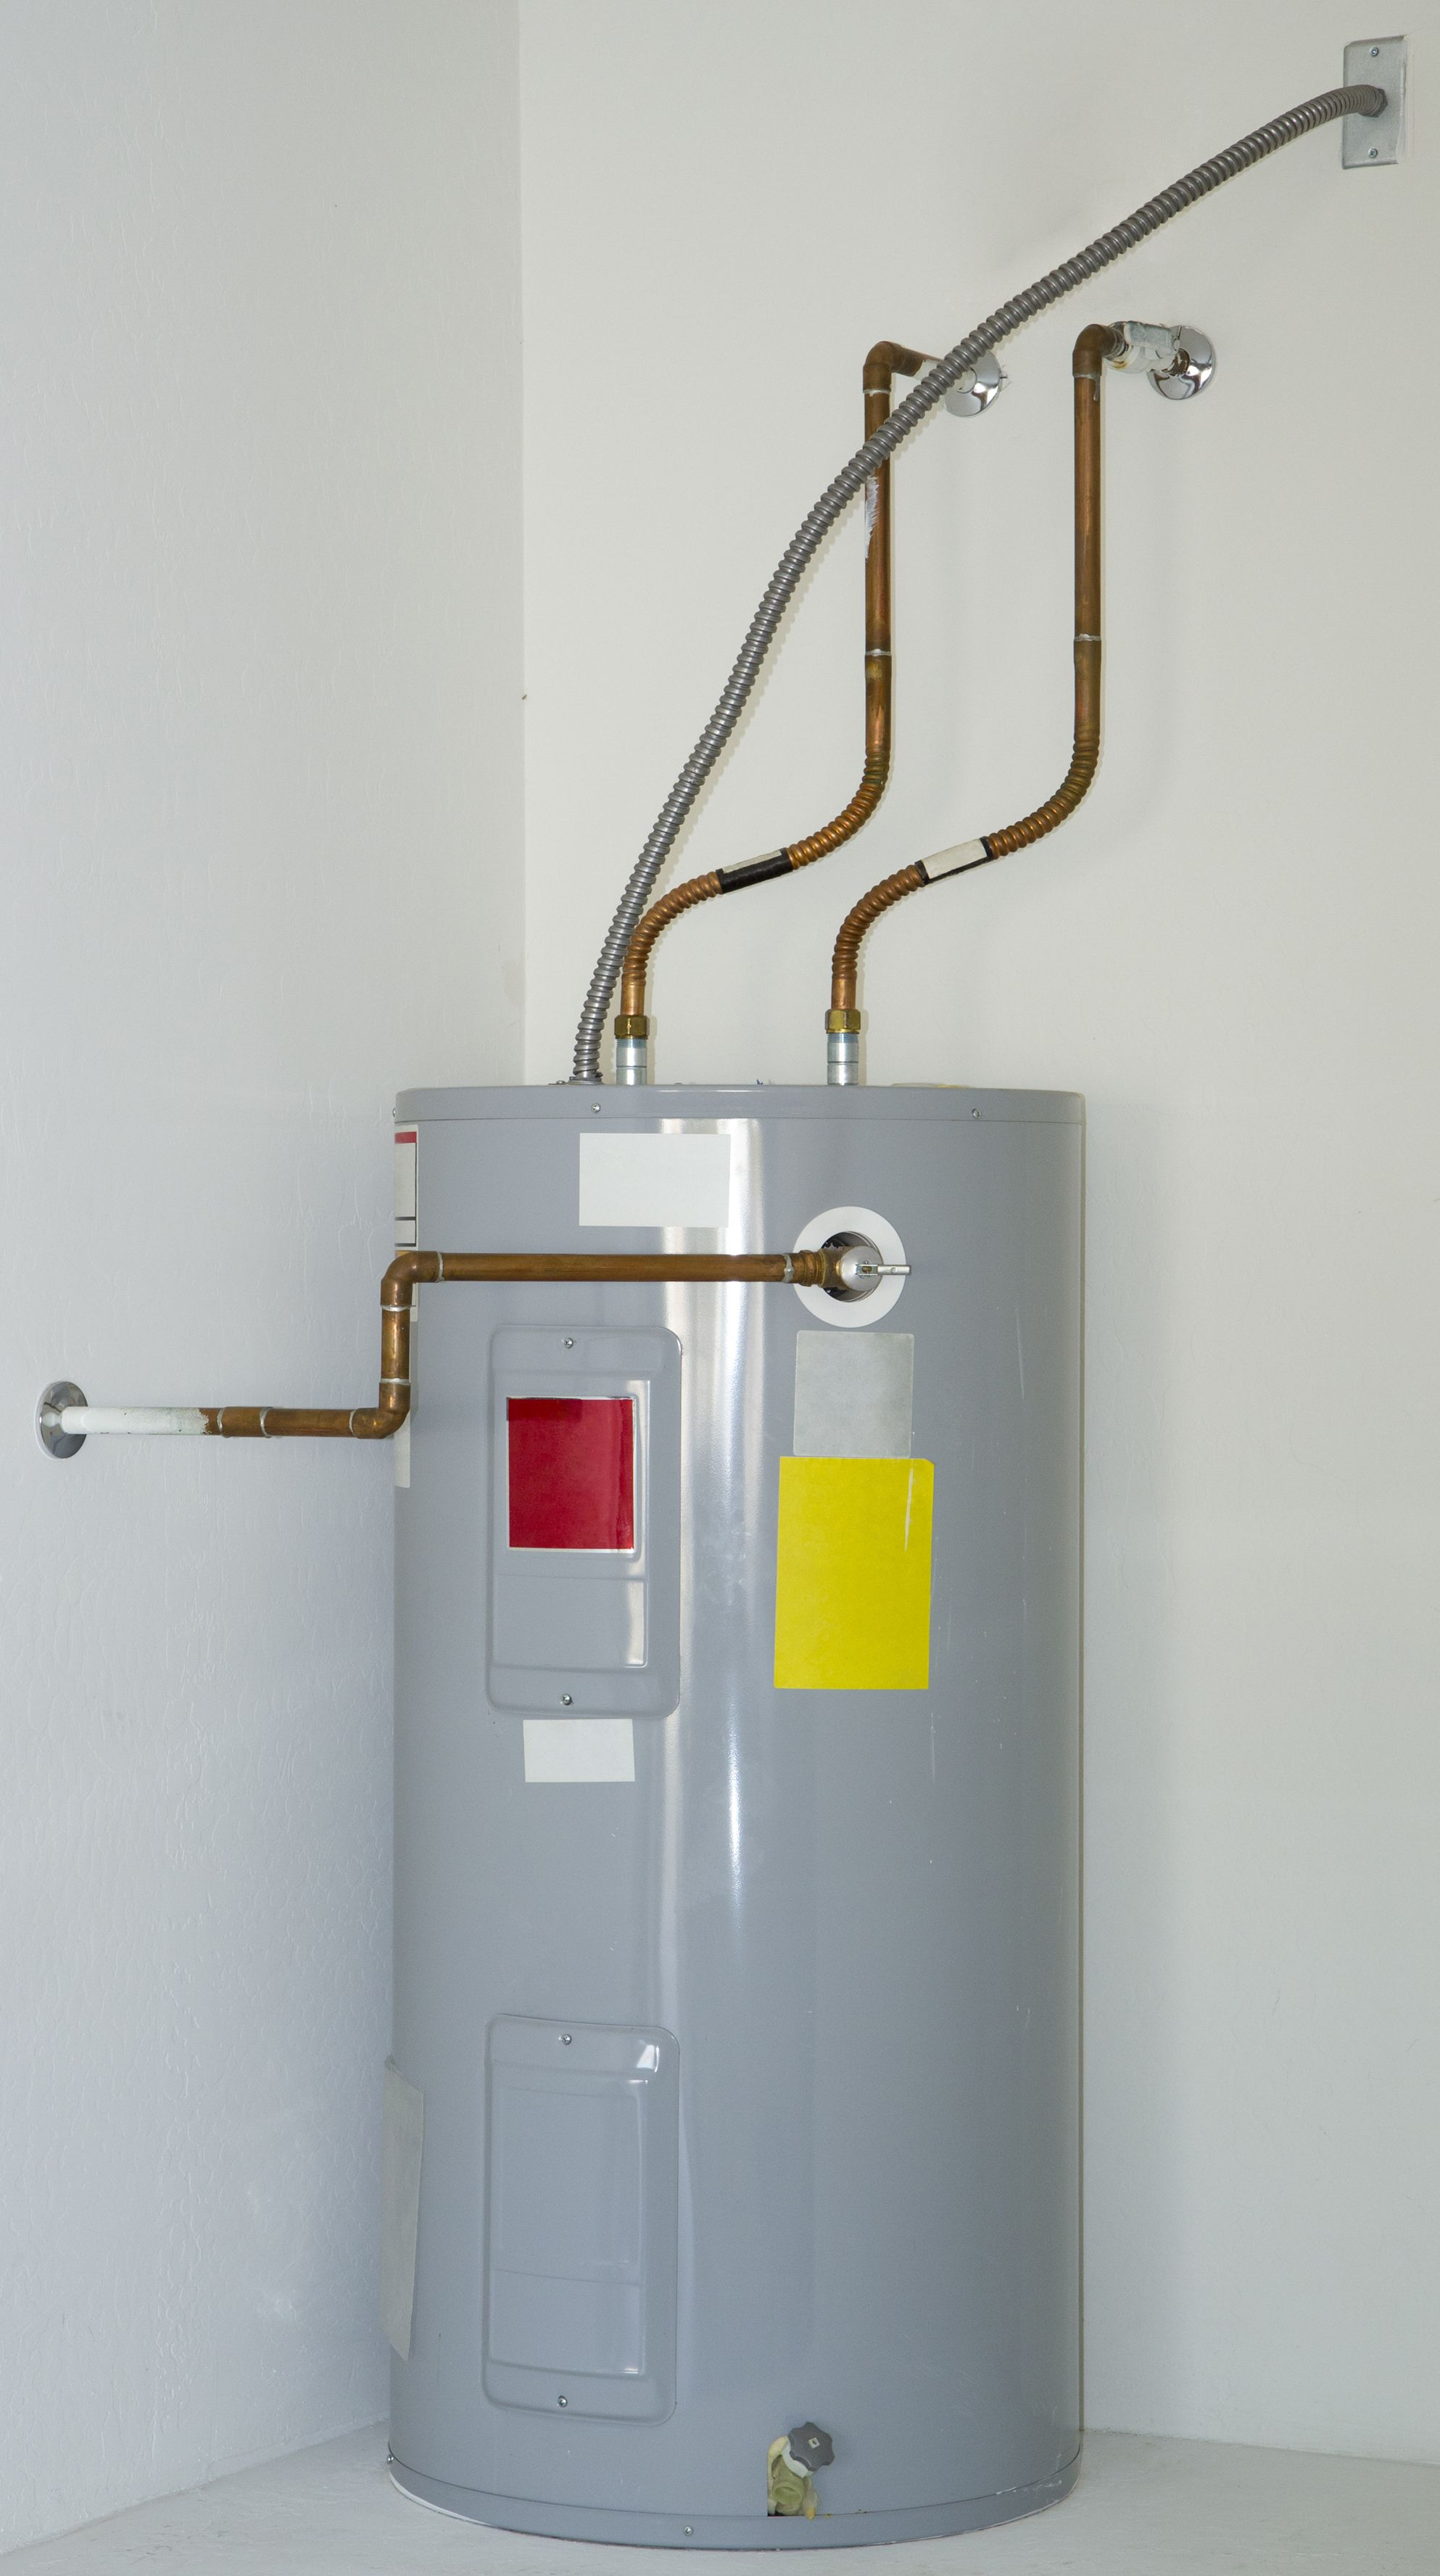 hight resolution of can you replace a gas hot water heater with an electric one answer in order to install an electric hot water heater you